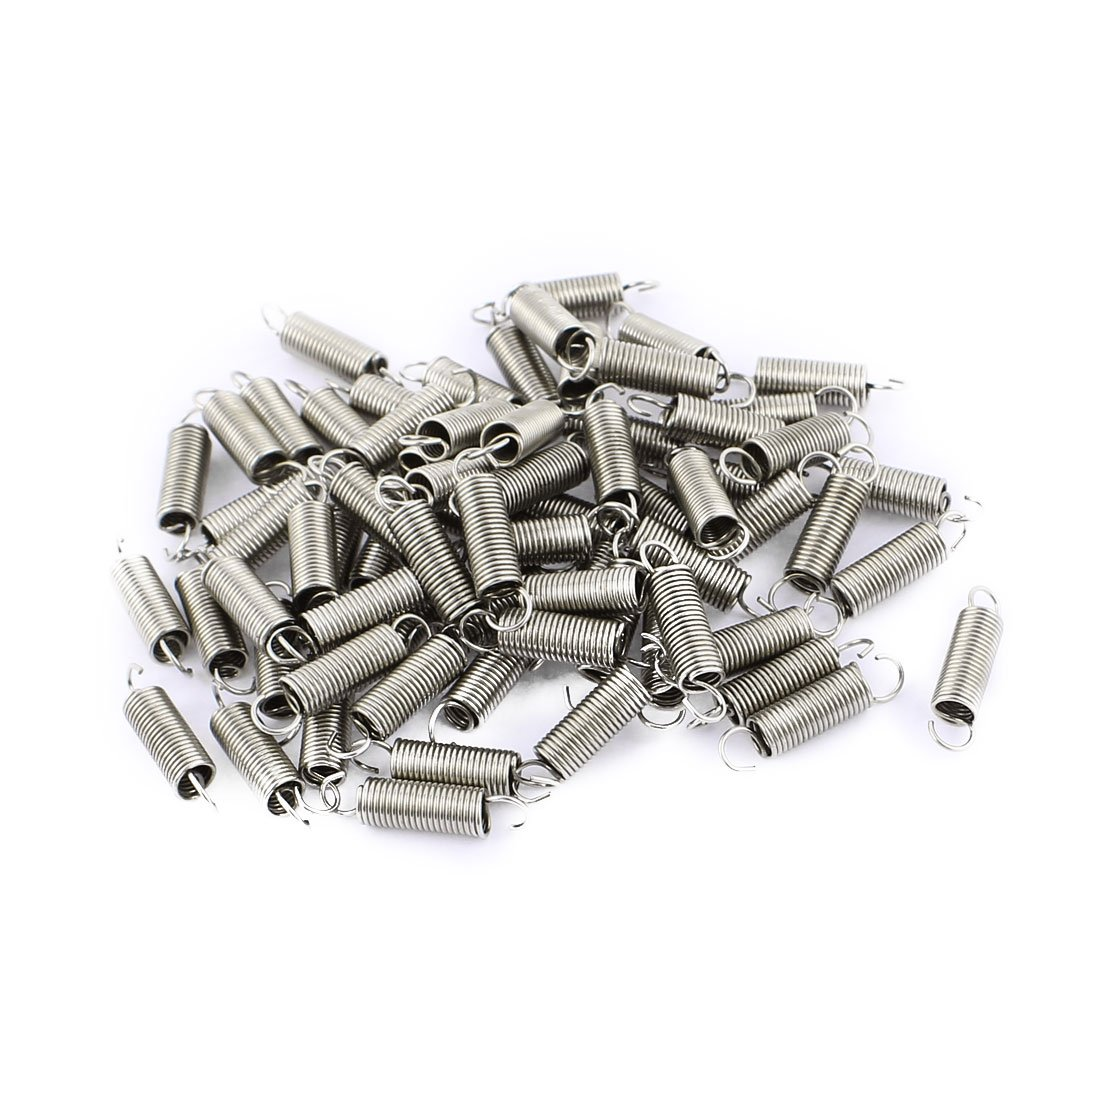 uxcell 70 Pcs Metal Internal Pipe Bending Spring 0.4mm x 3mm x 12mm